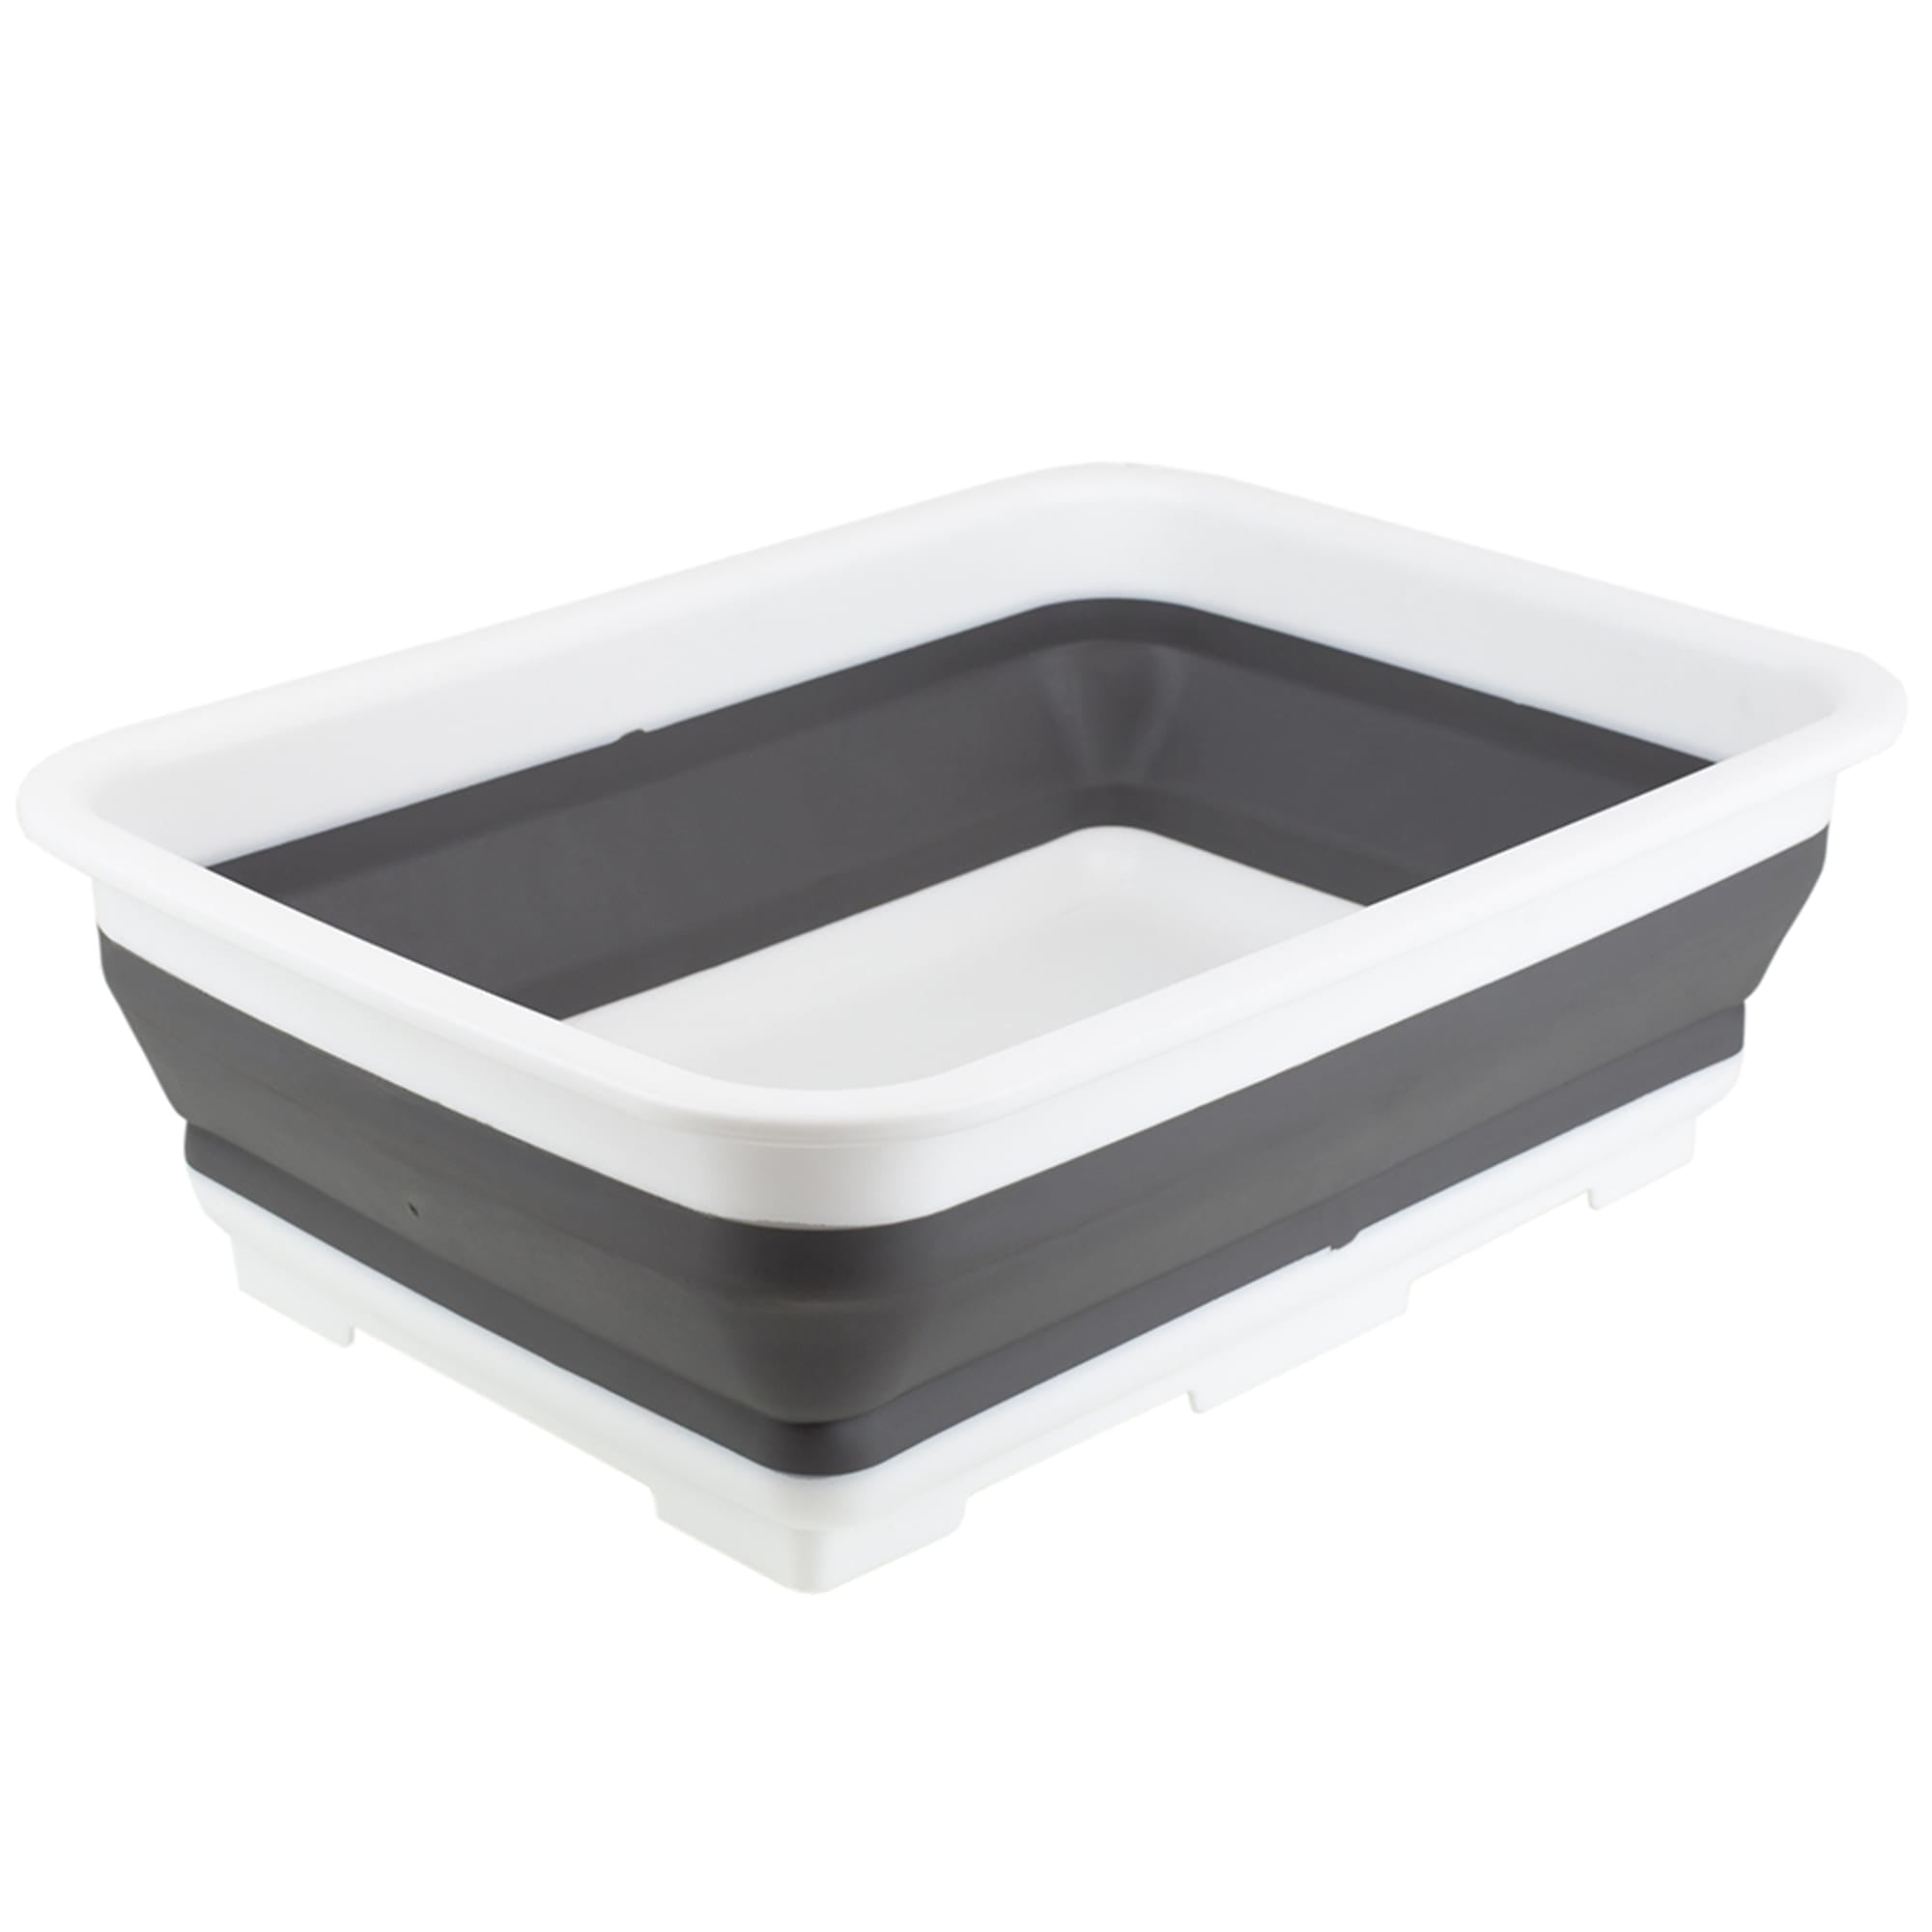 Michael Graves Design Pop Up Collapsible White Plastic and Grey Silicone Dish Pan